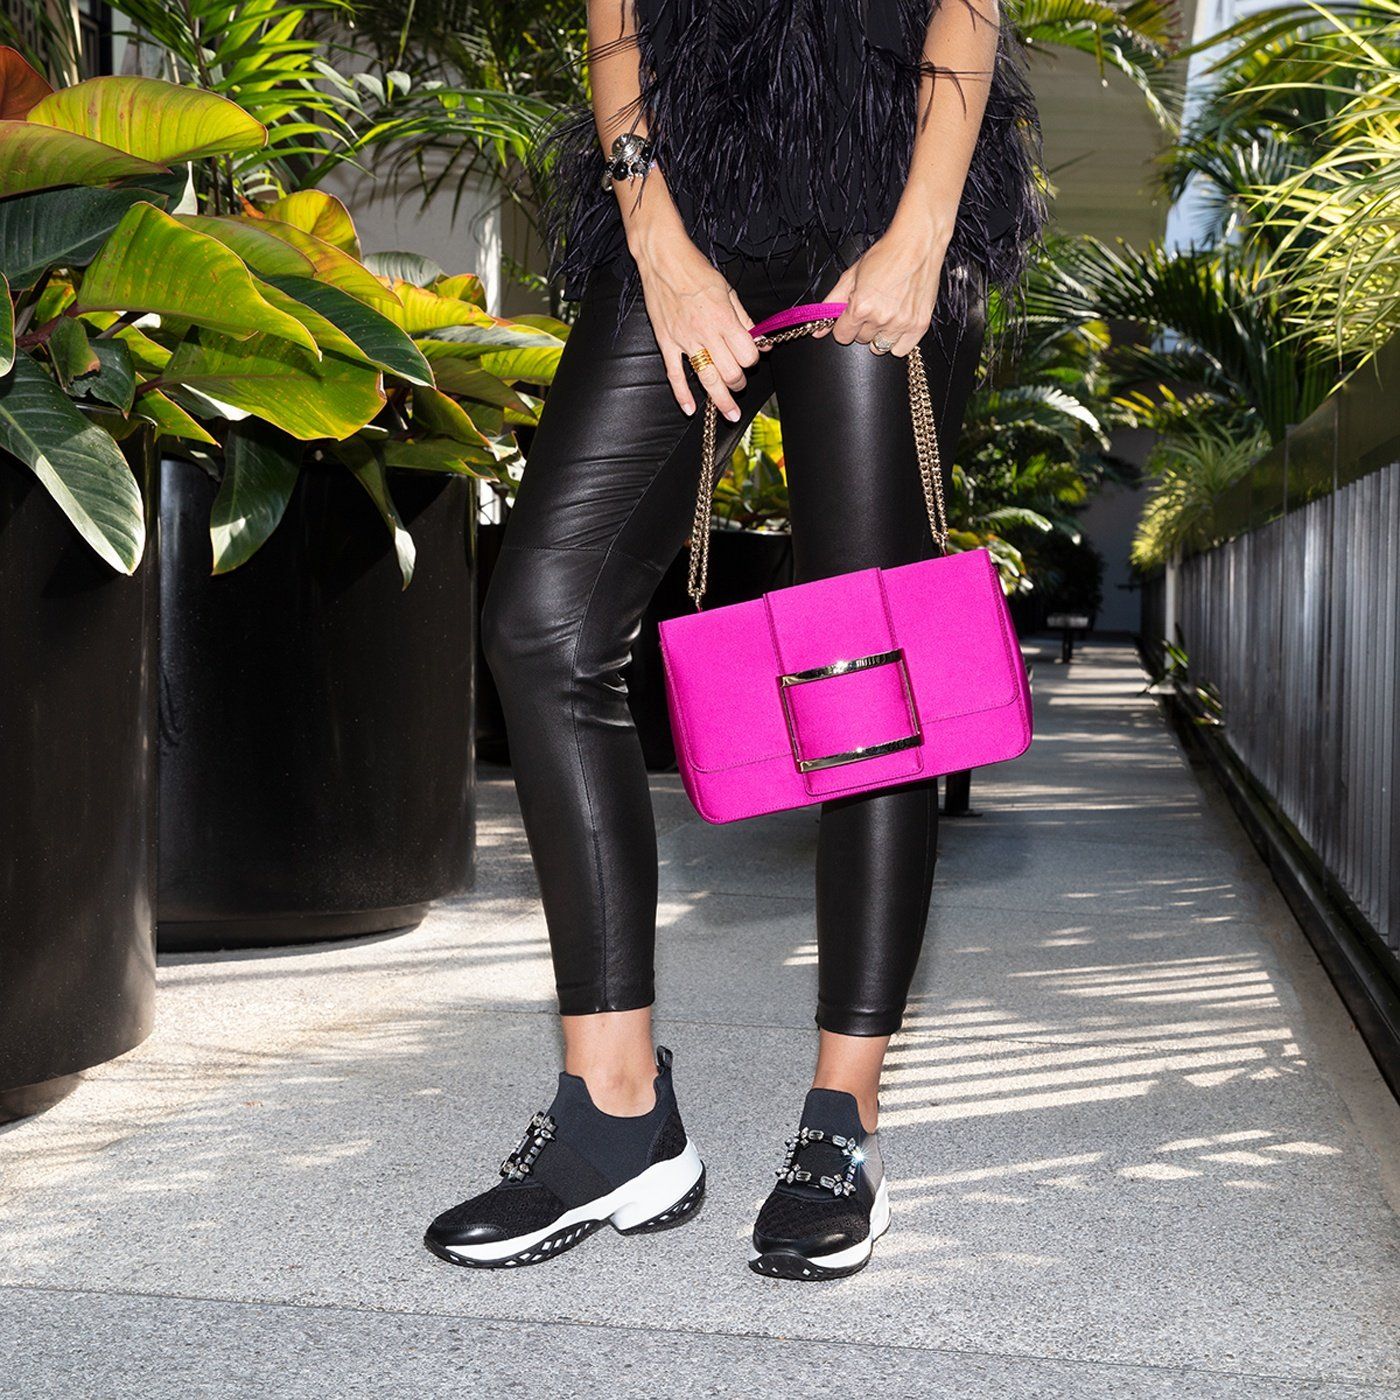 Très Vivier bag and Viv' Run Strass Buckle Sneakers are available at Roger Vivier Bal Harbour.